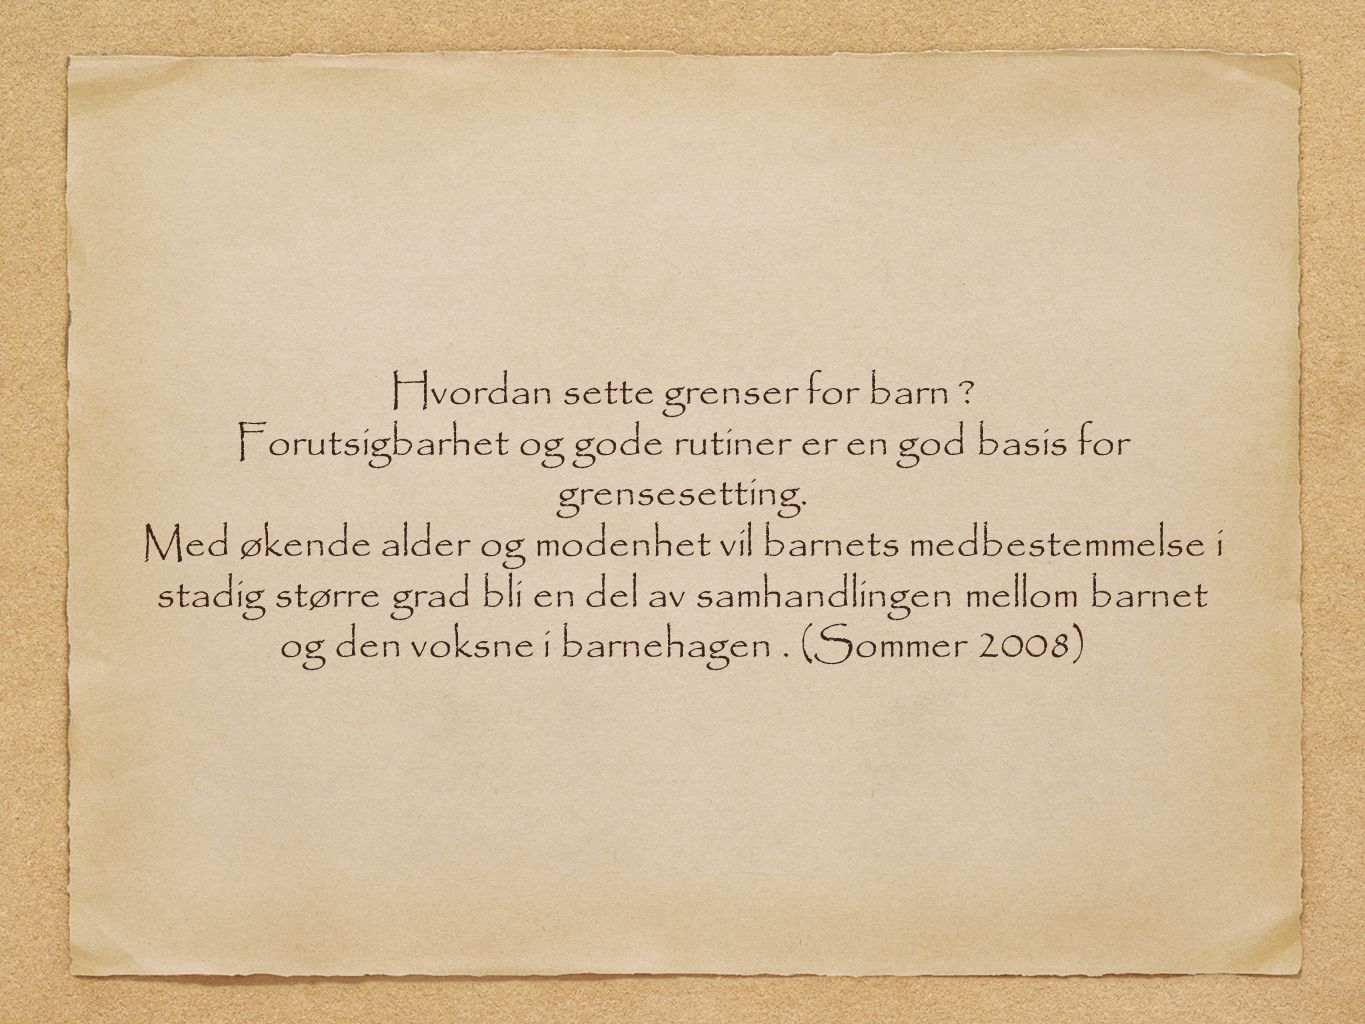 Hvordan sette grenser for barn . Forutsigbarhet og gode rutiner er en god basis for grensesetting.